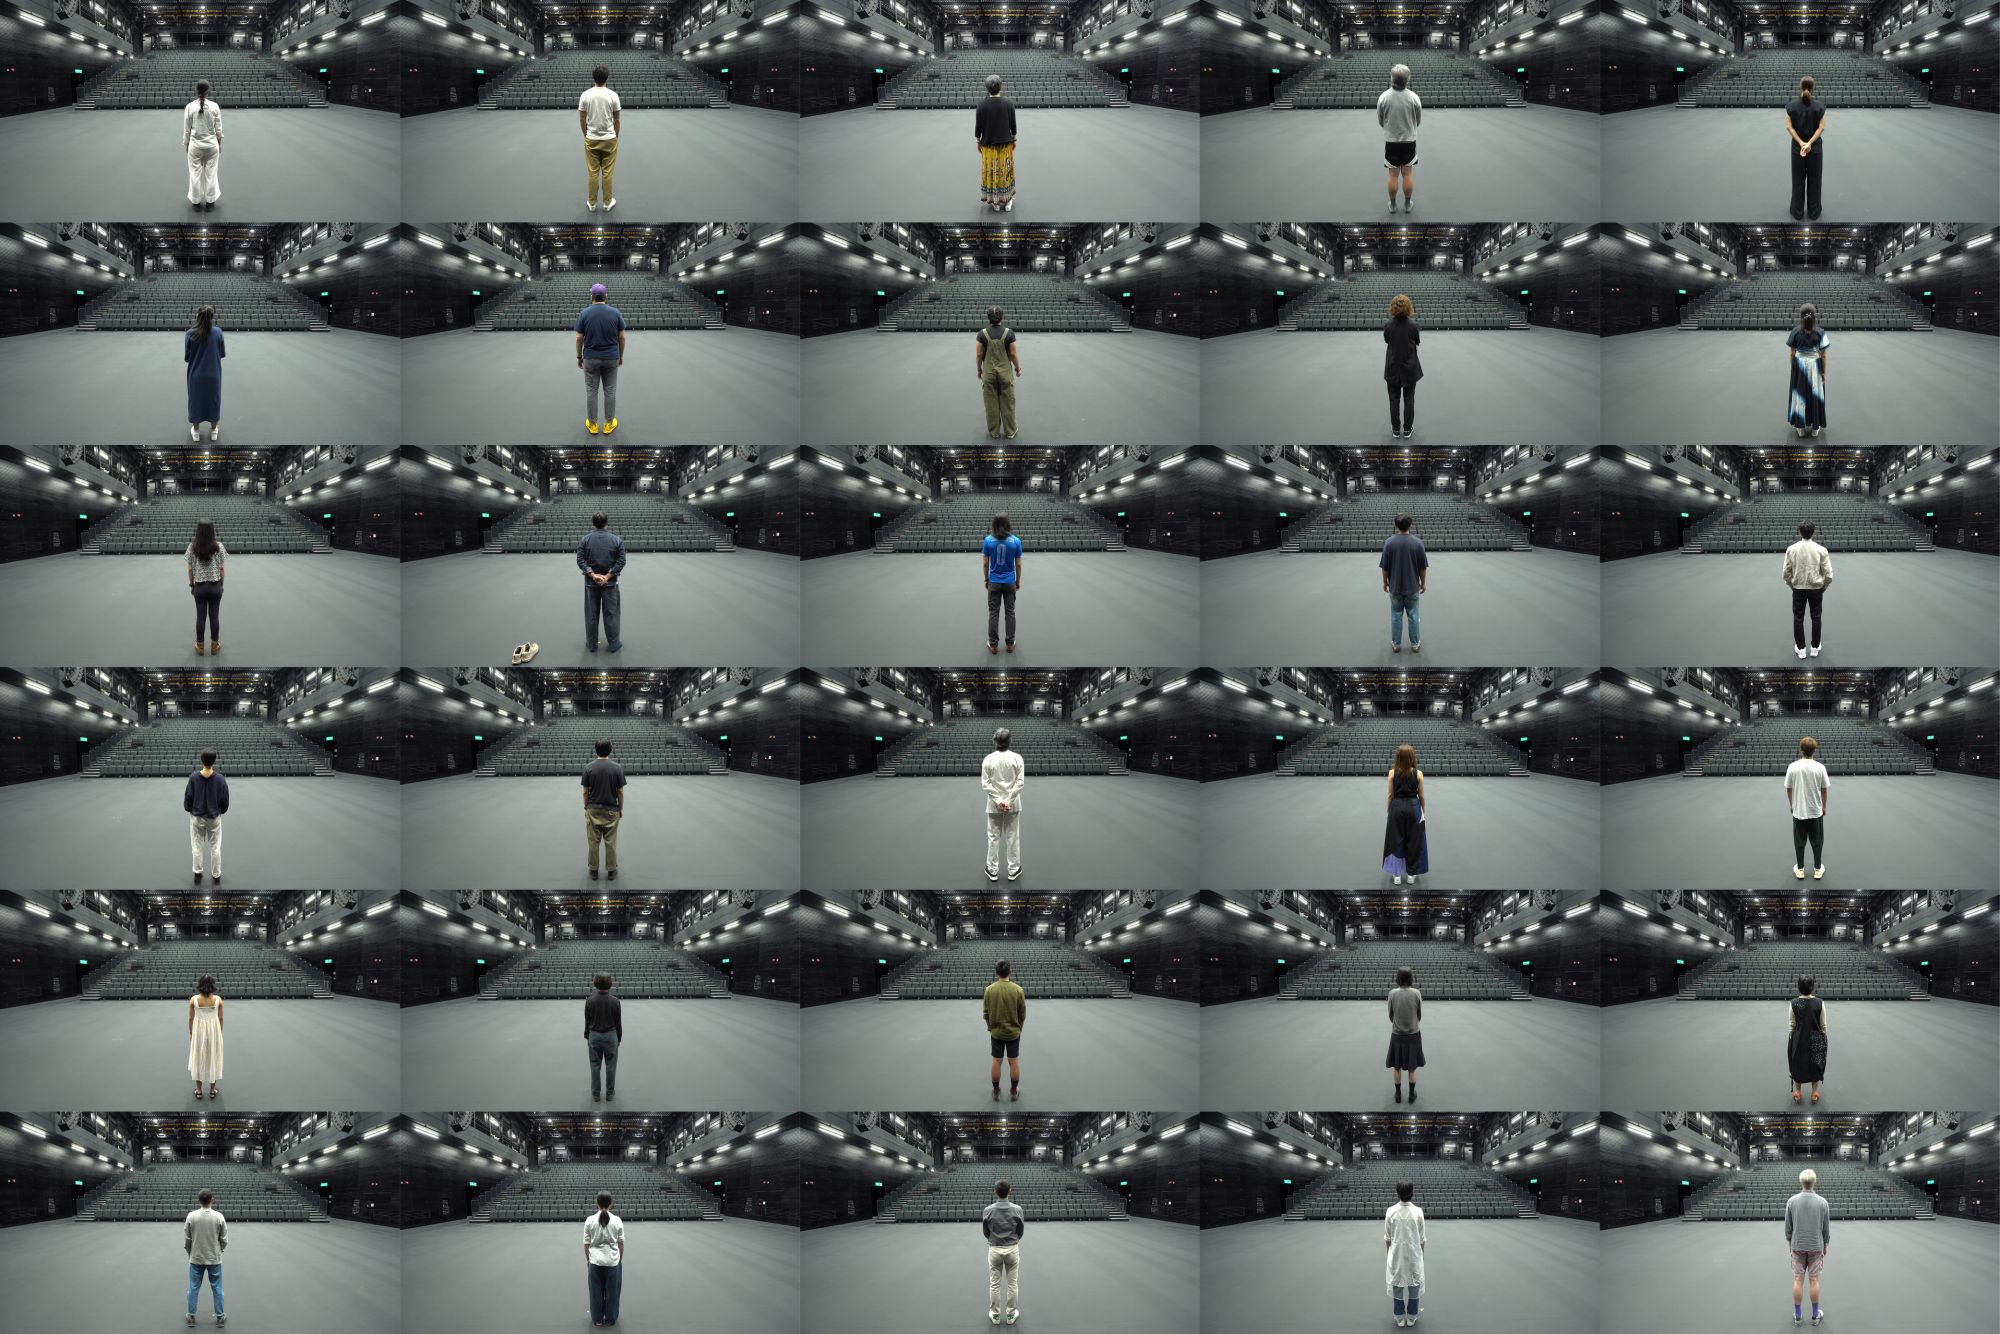 On Empty Theatre: A New Film by 30 Hong Kong Theatre Artists During Covid-19